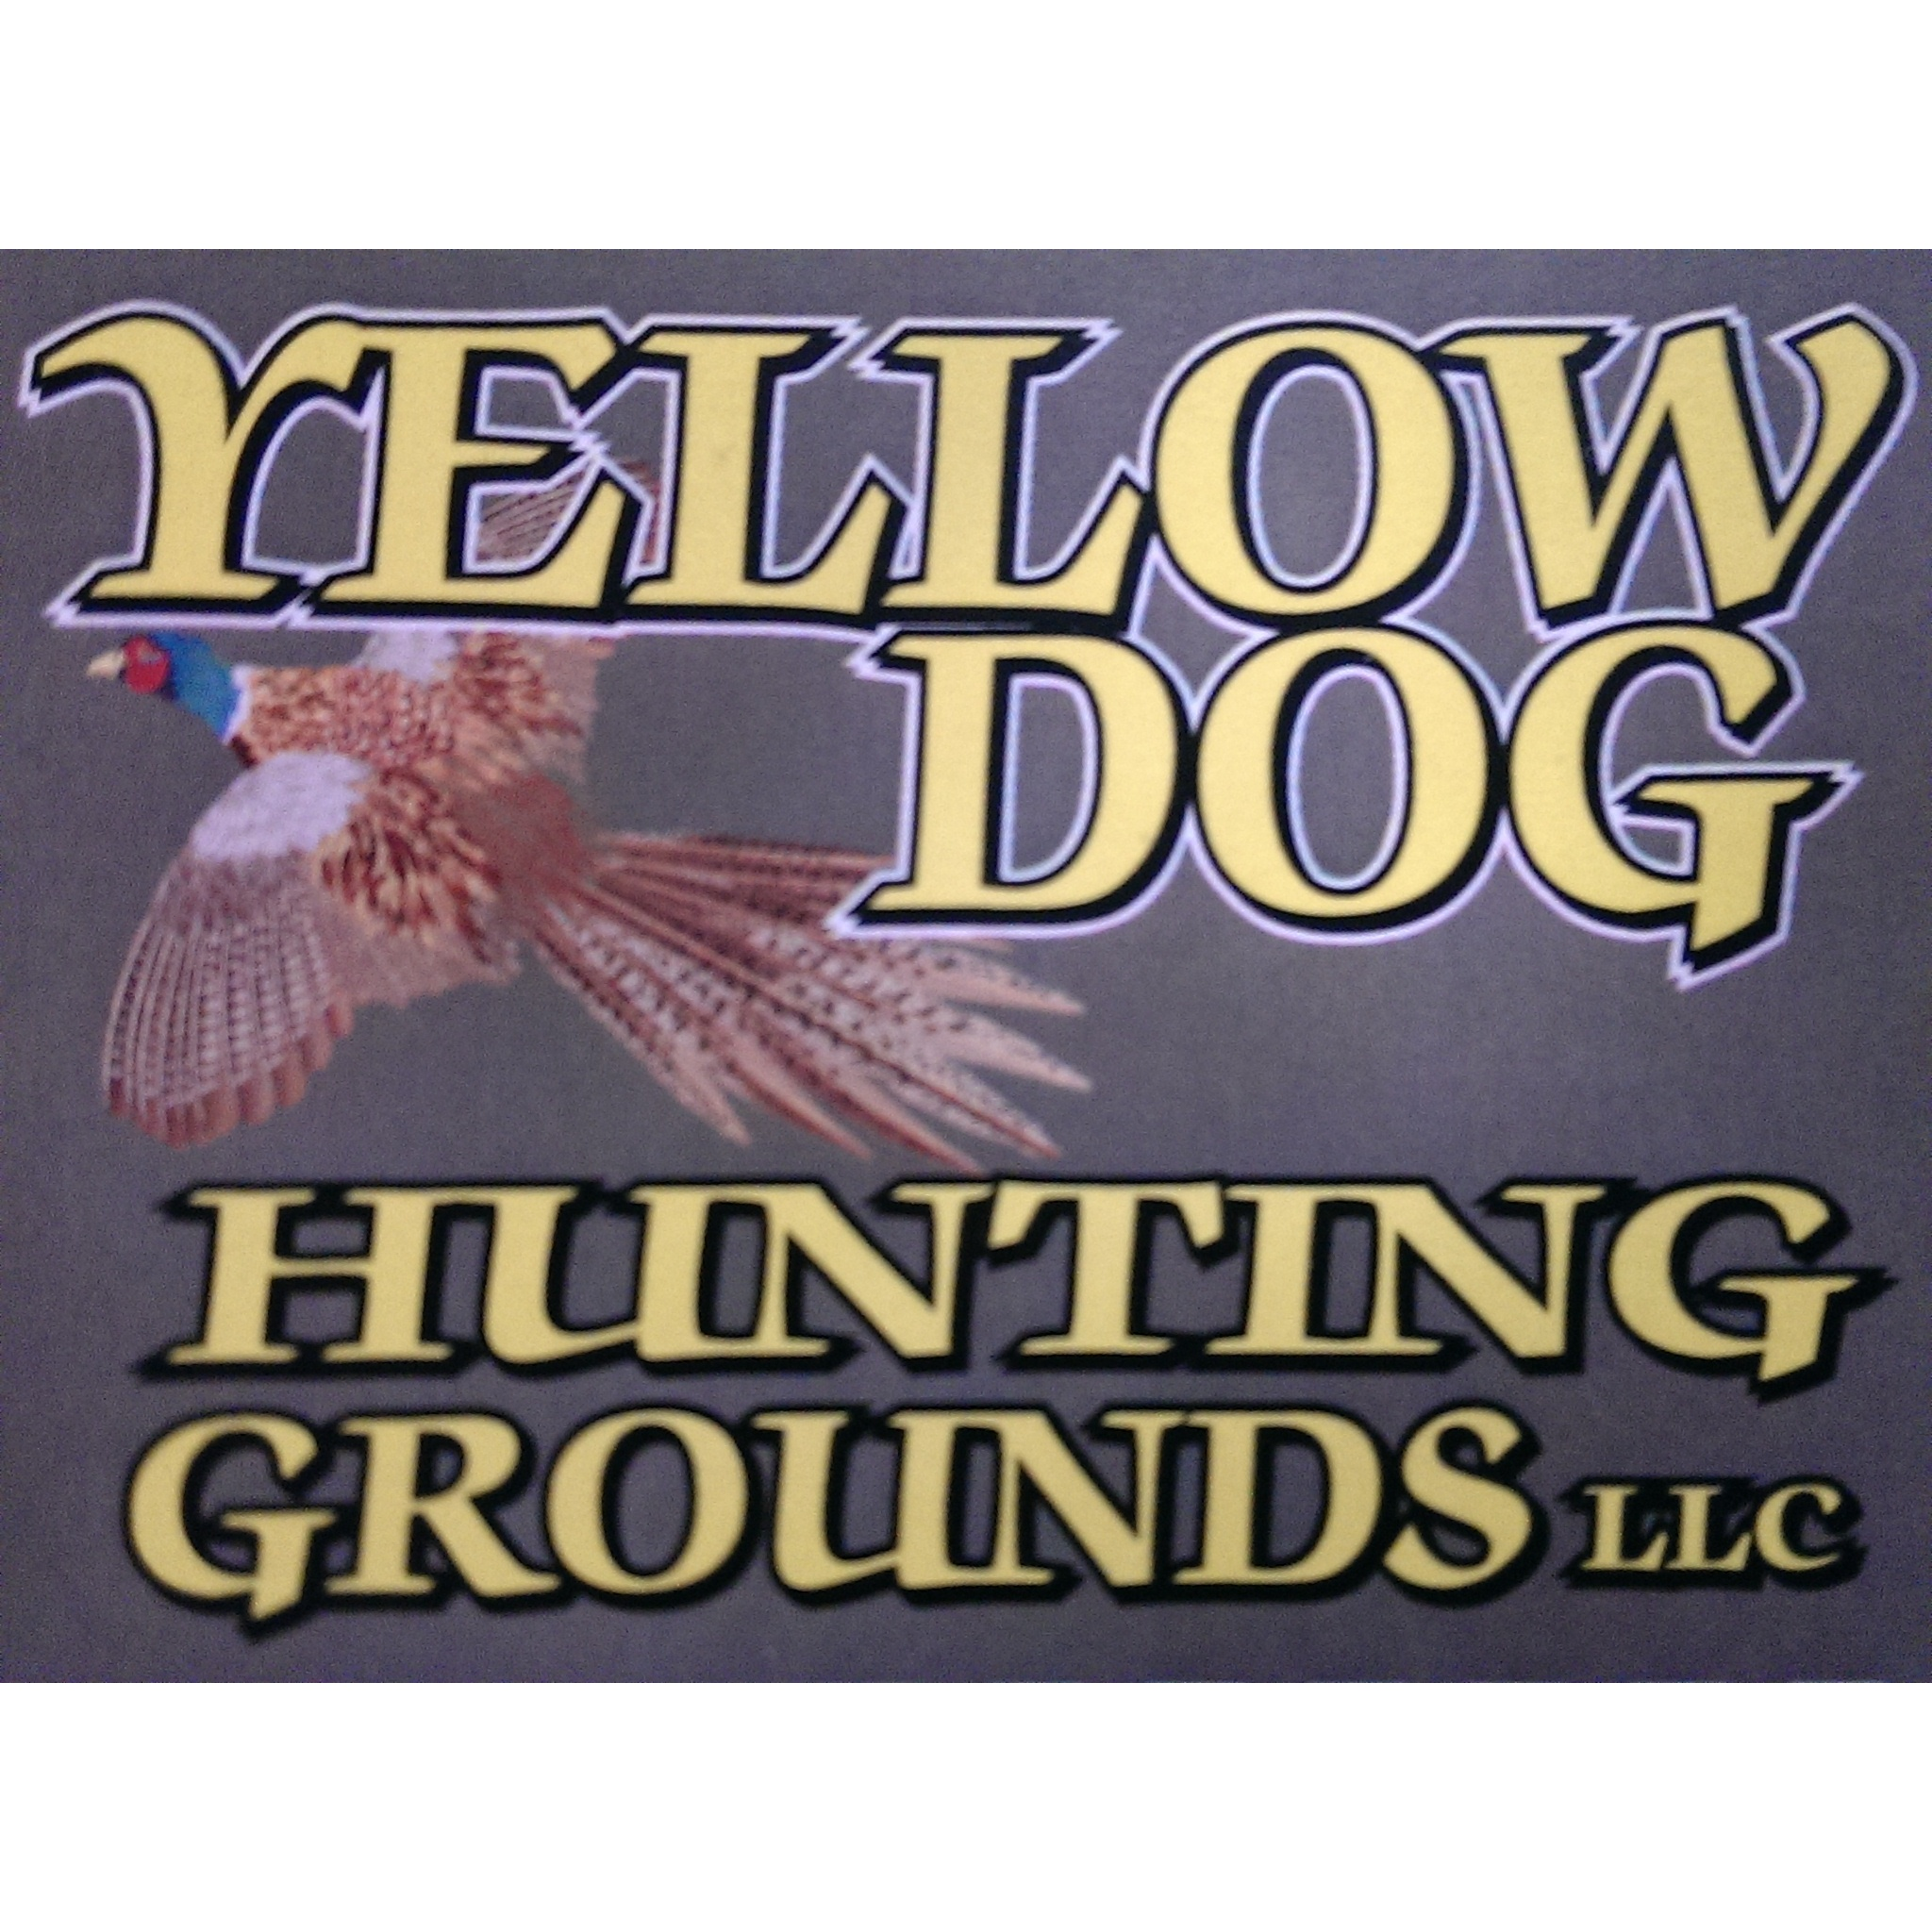 Yellow dog hunting grounds llc in kane pa hunting for Oklahoma fishing license age